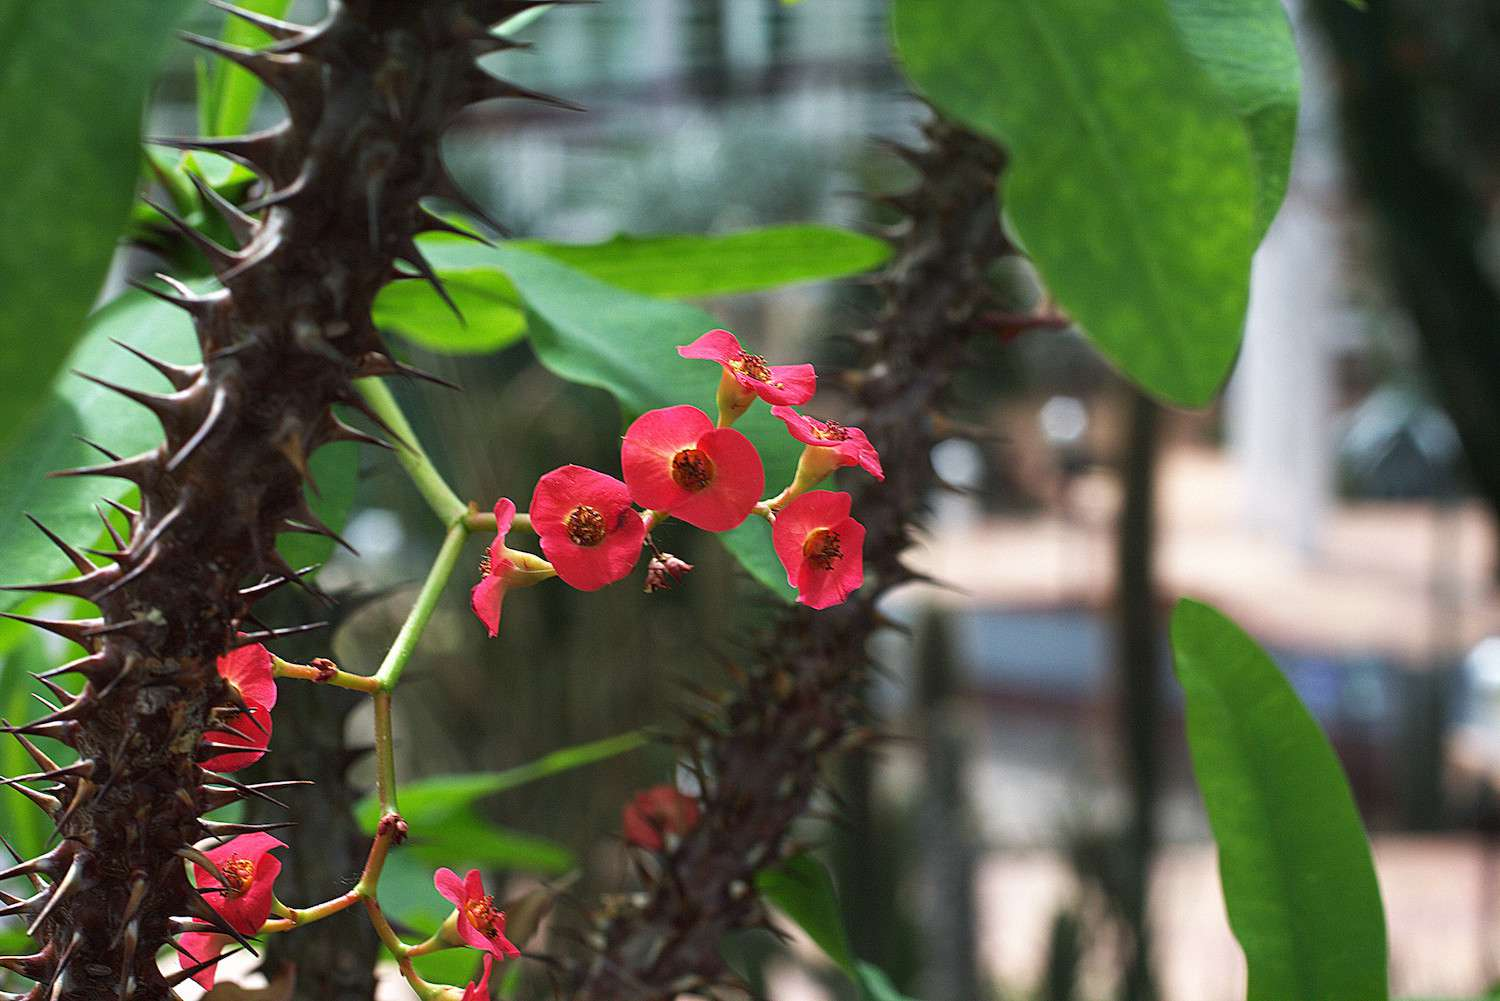 A stem of thorns guards the small, cluster of dark pink flowers on this Crown of Thorn plant